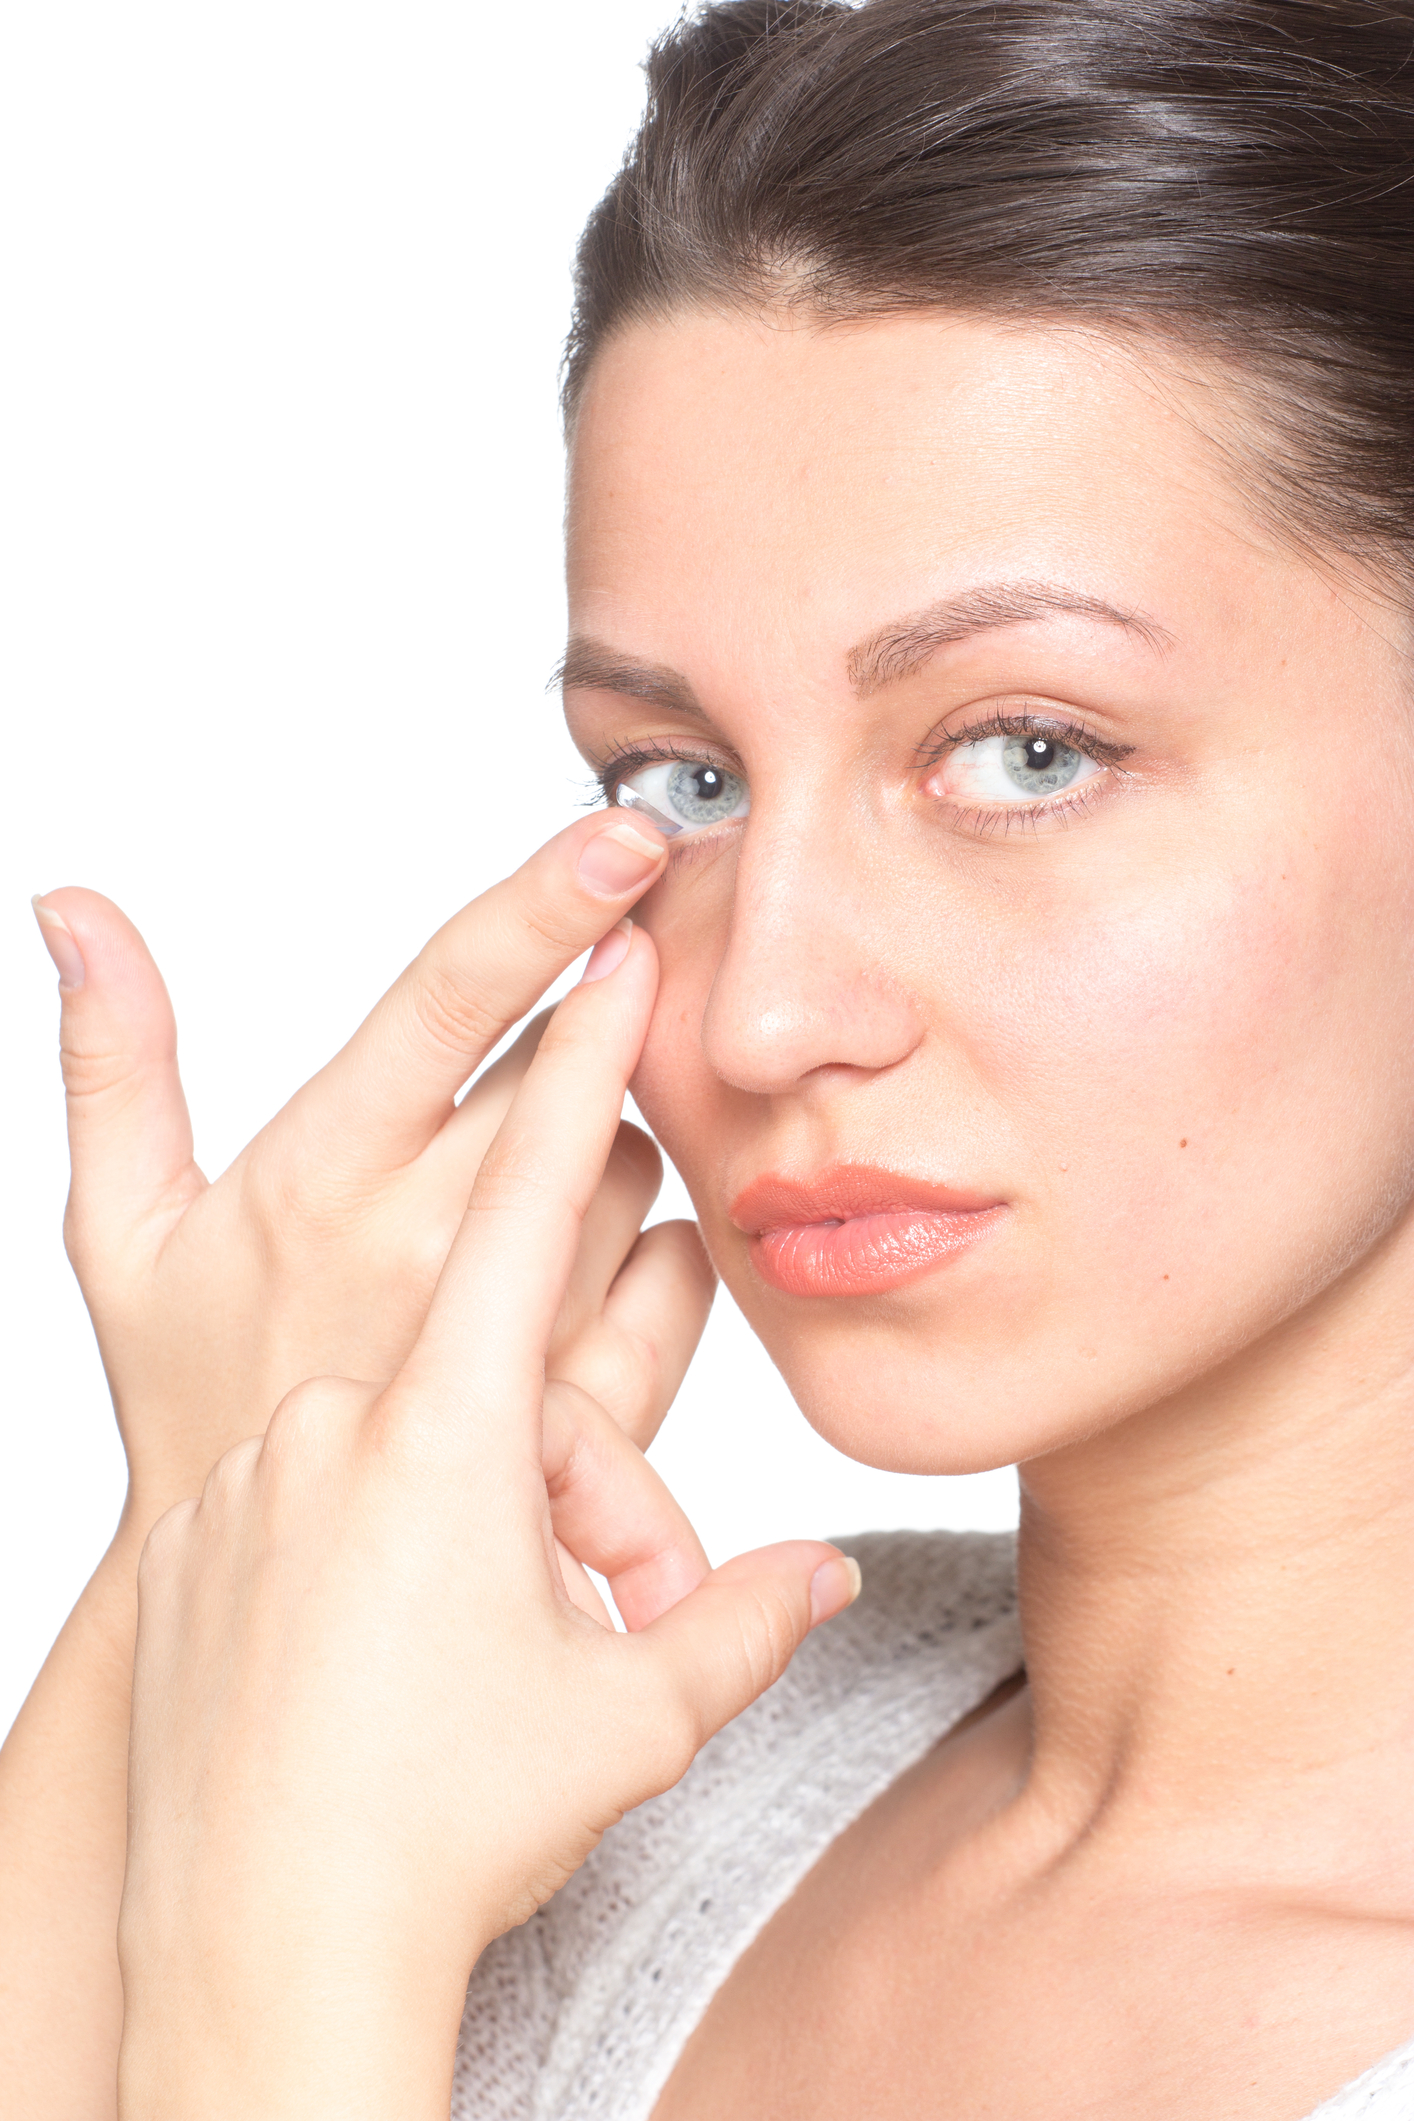 Comfortable Contact Lenses Optique Of Denver Softlens Acuvue 2 Woman Applying Lens